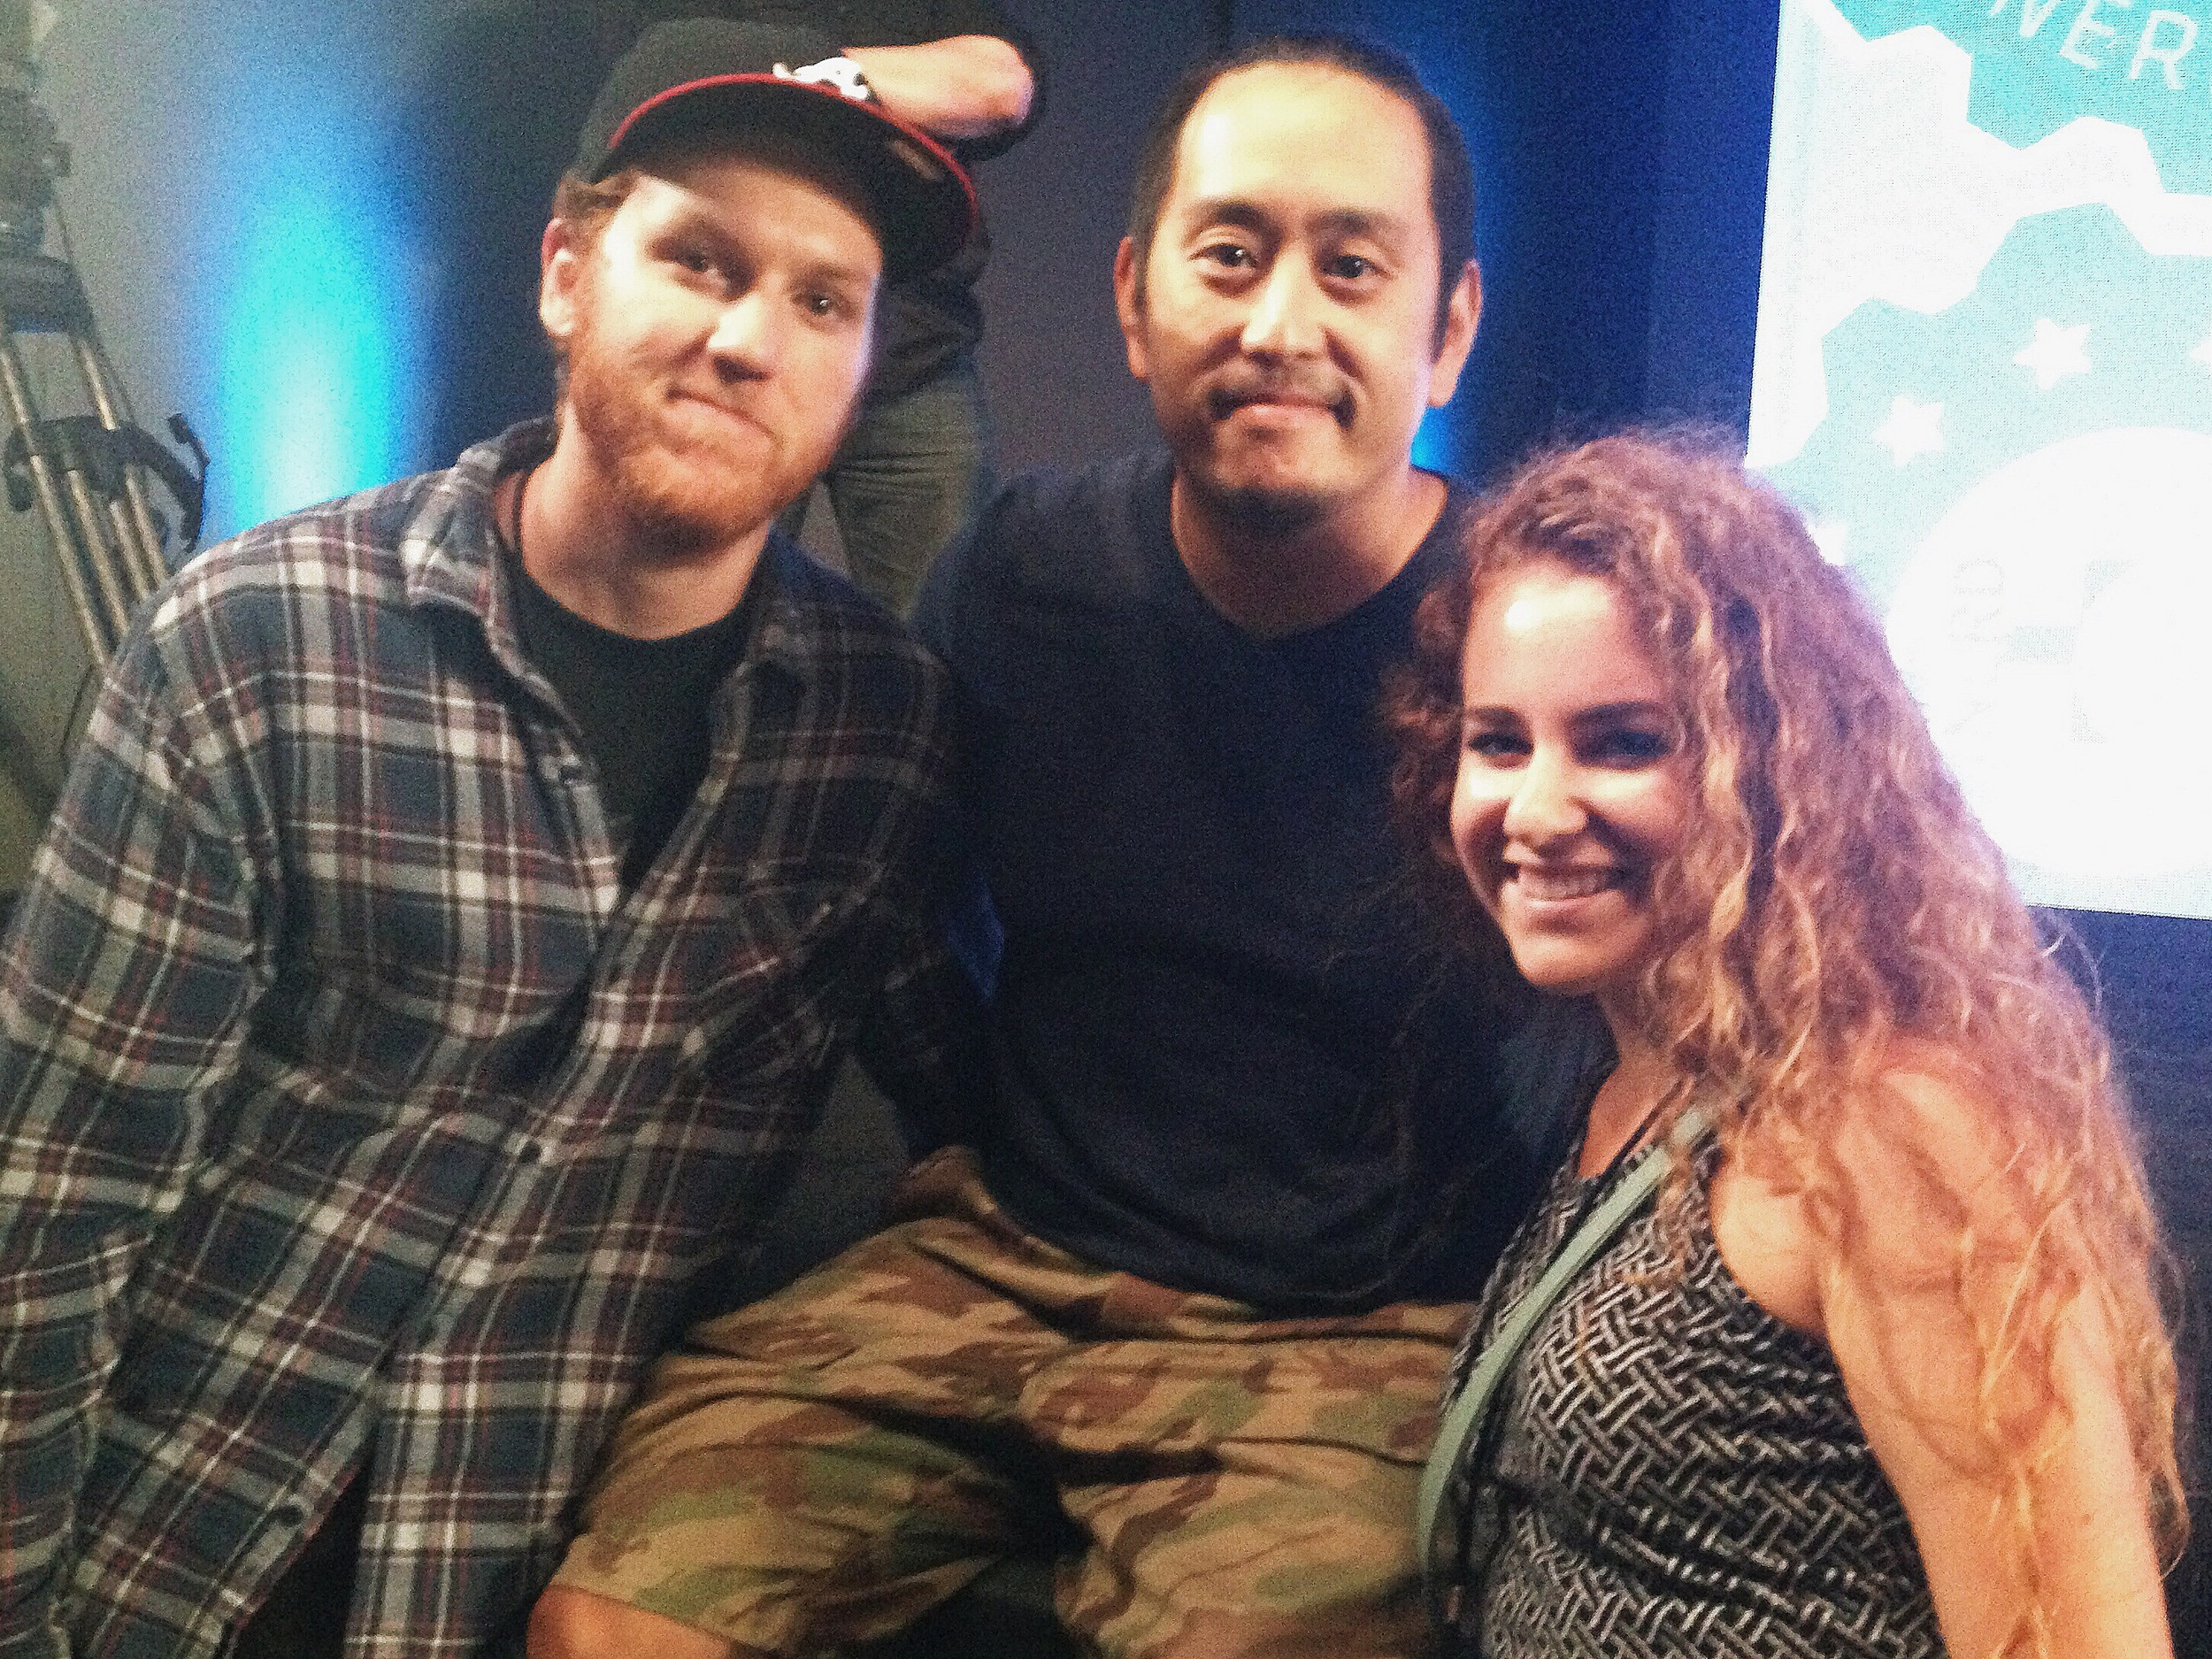 After the Awards Show/Concert, KT and I were able to attend an early screening of the film Mall, directed by Linkin Park's own Joe Hahn. We watched the film and then took part in a Q&A panel. Joe was a super rad guy, and his movie was crazy!